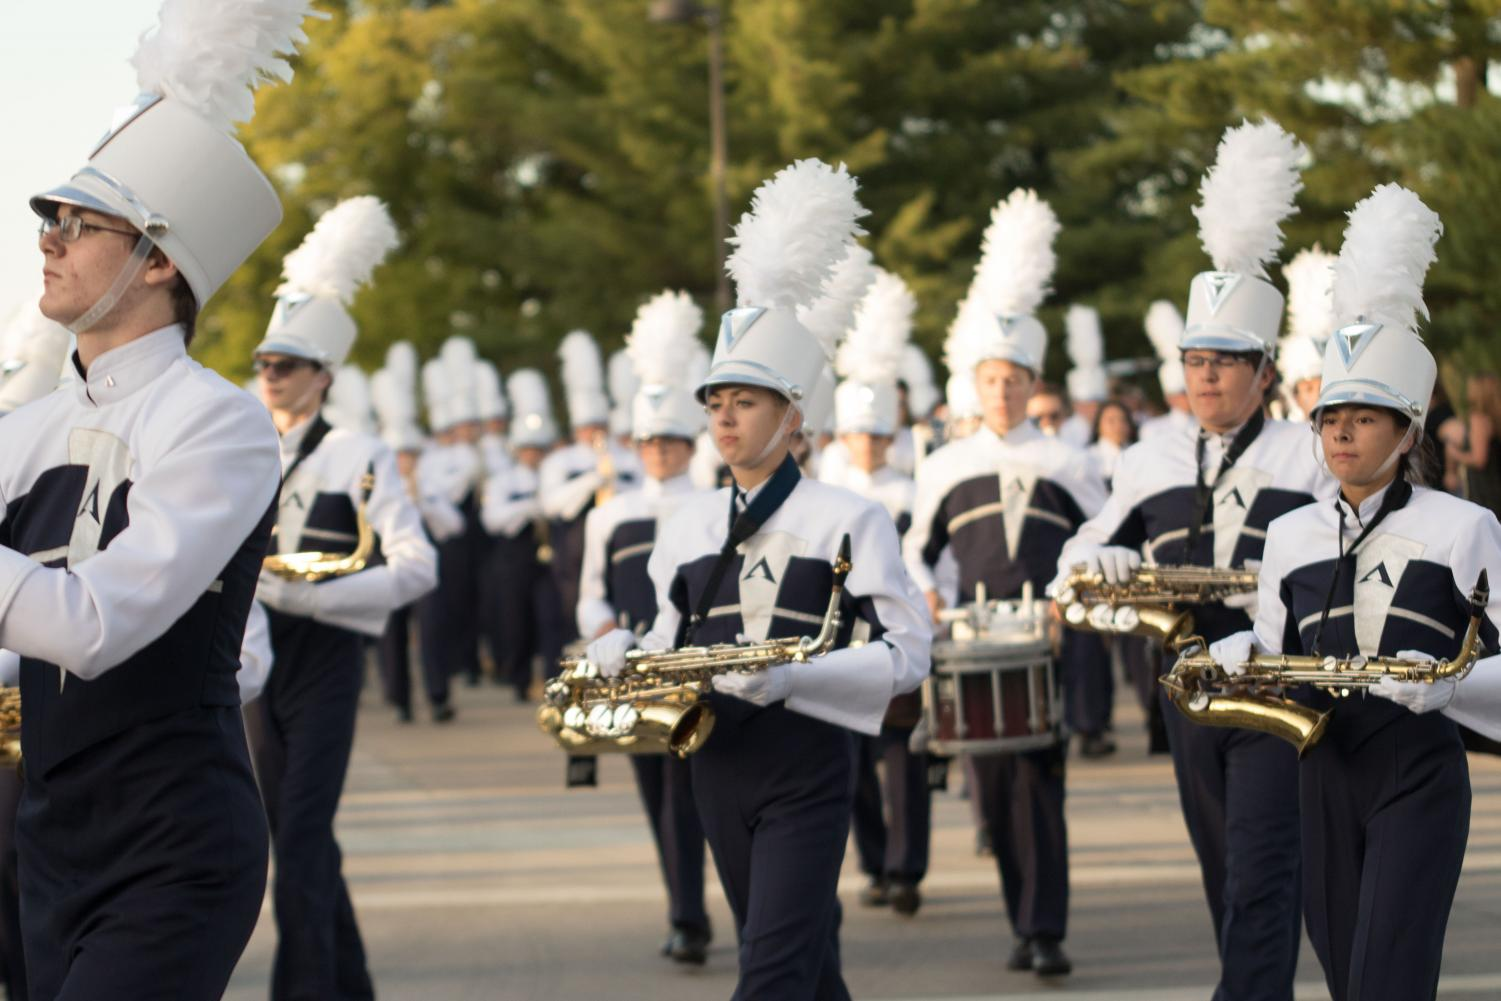 FHC Spartan Regiment marches in the annual homecoming parade.